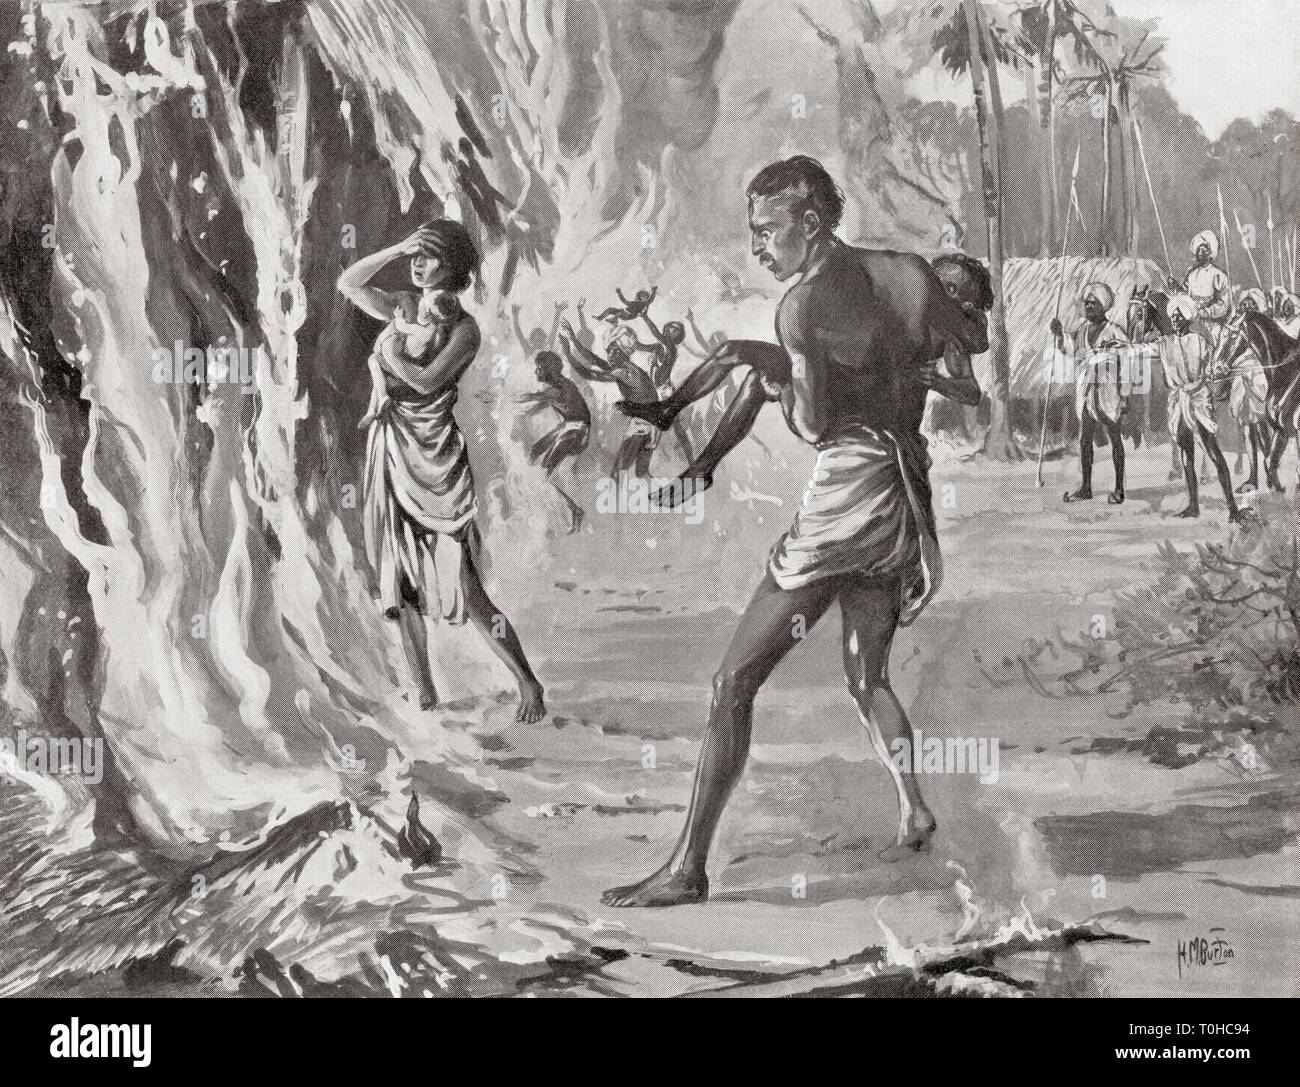 Villagers in India sacrificing themselves on fire to avoid cruel raiding Pindaris - Stock Image